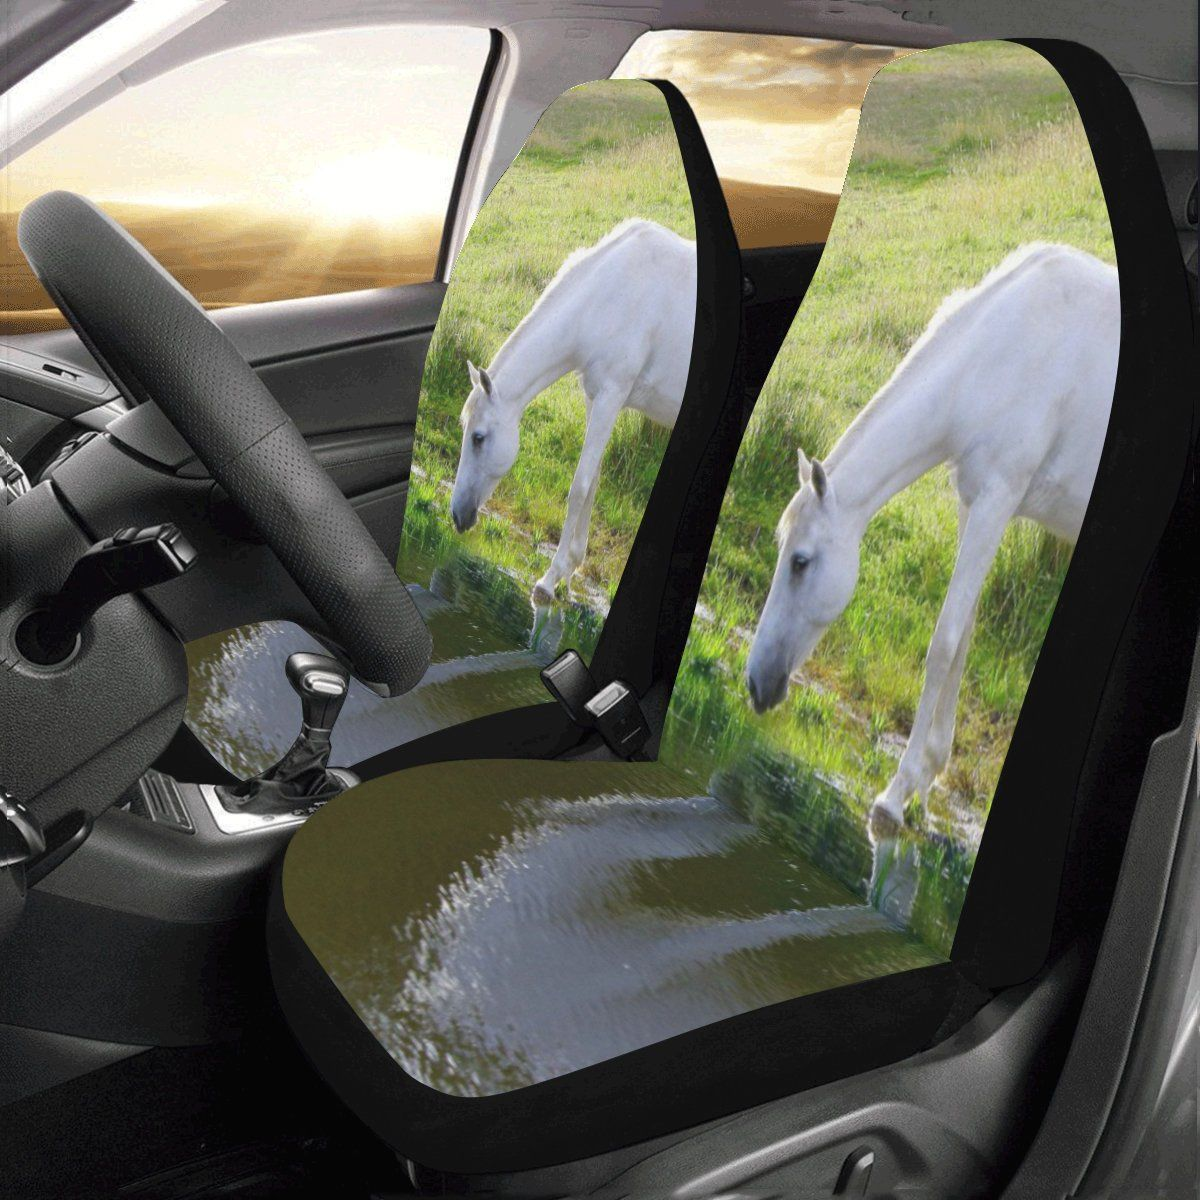 Pin by Tina Edwards on Stuff to buy Car seat cover sets